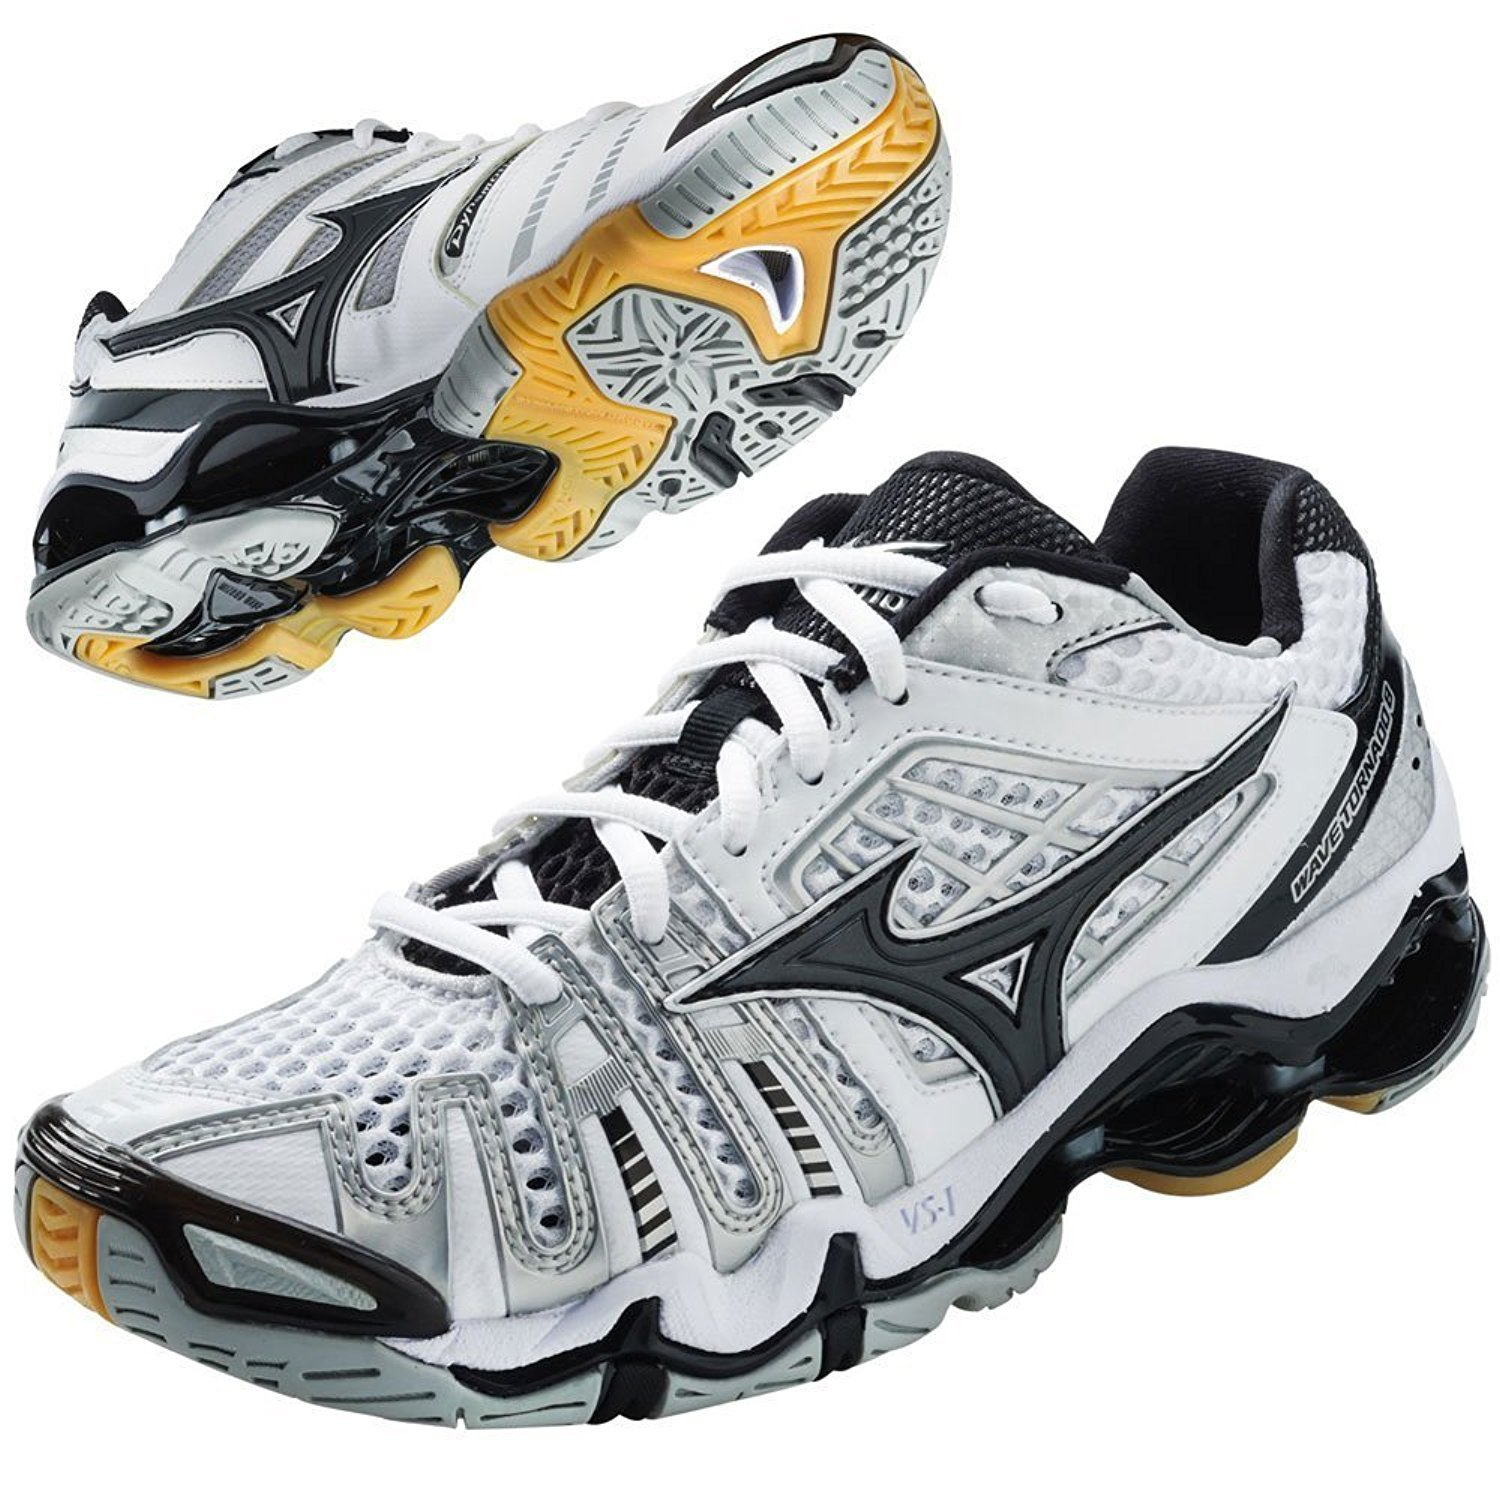 mizuno volleyball shoes tornado 8 for sale